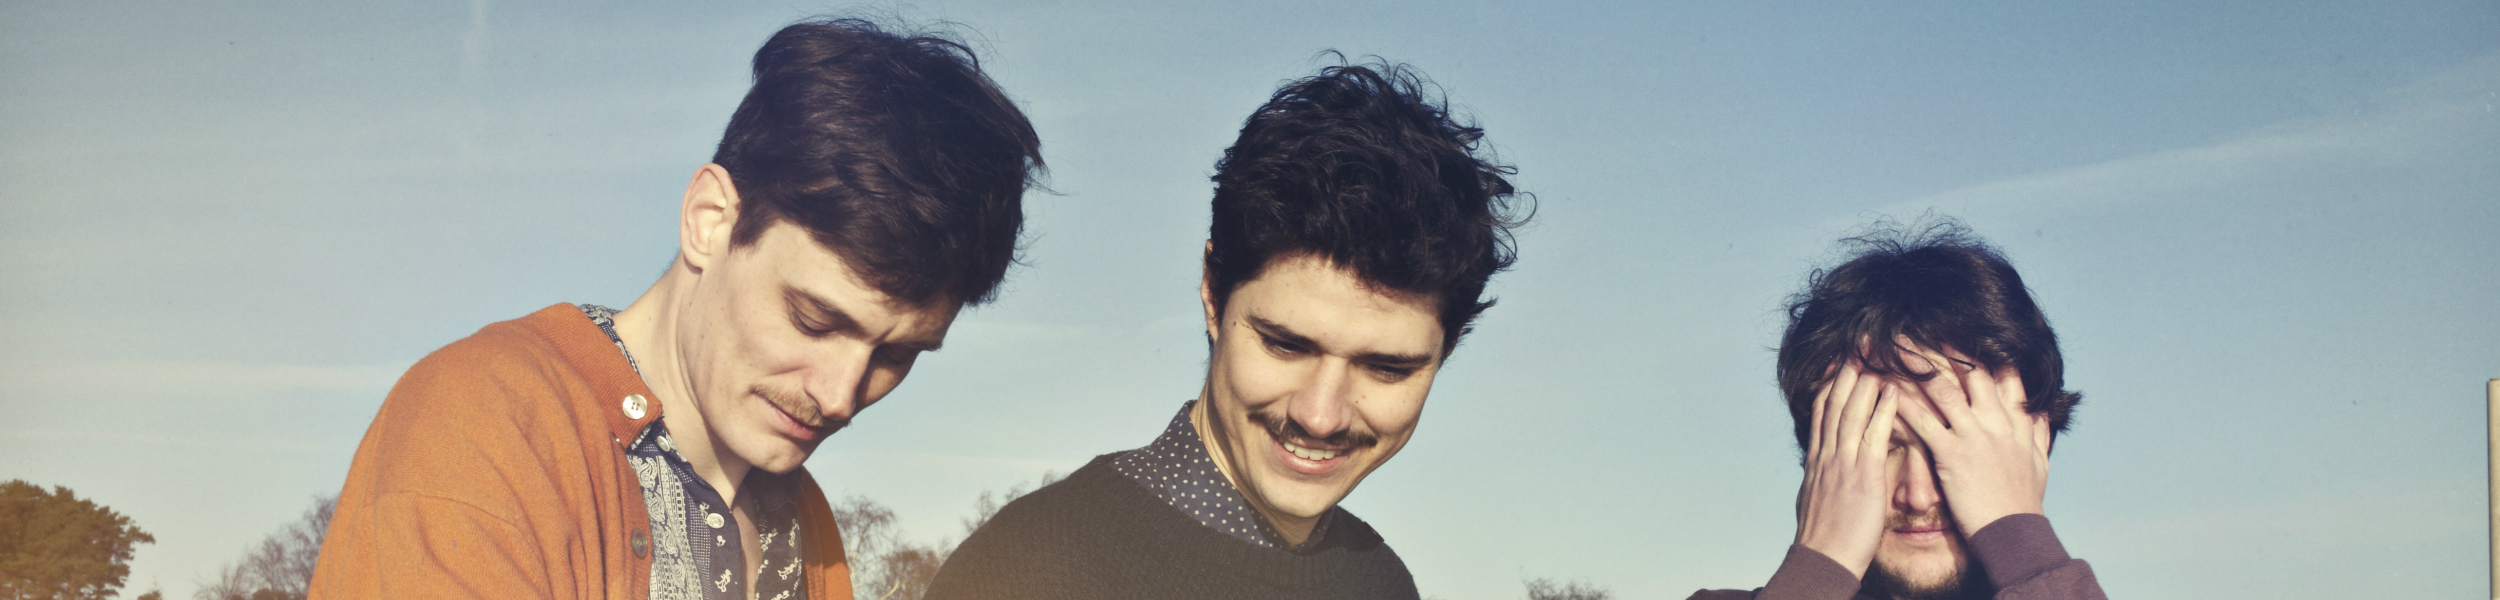 Efterklang - Watch The New Video for 'The Living Layer' by Efterklang